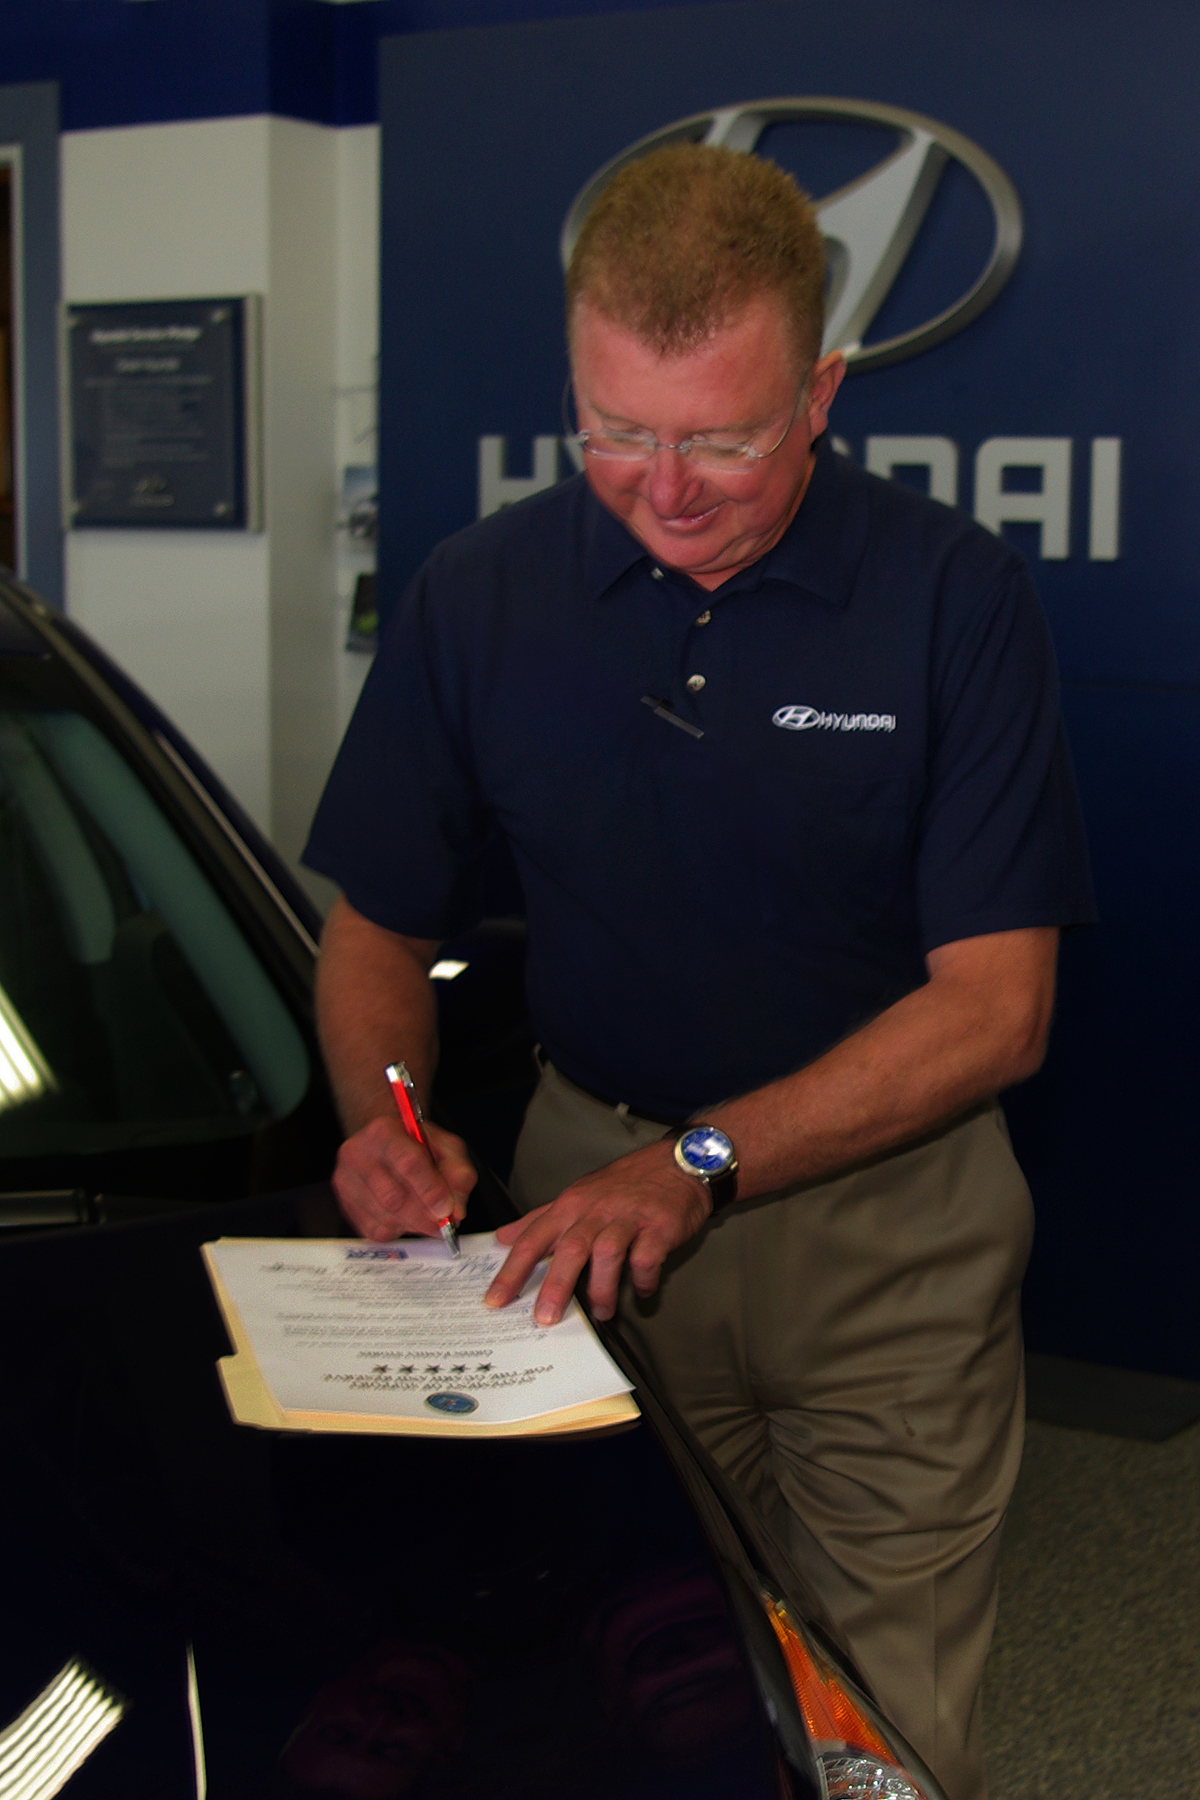 Mike Quimby Of Green Hyundai Signs An ESGR Statement Of Support Sept. 13 On  The Hood Of One Of The Cars On Showroom Floor Of The Springfield Dealership.